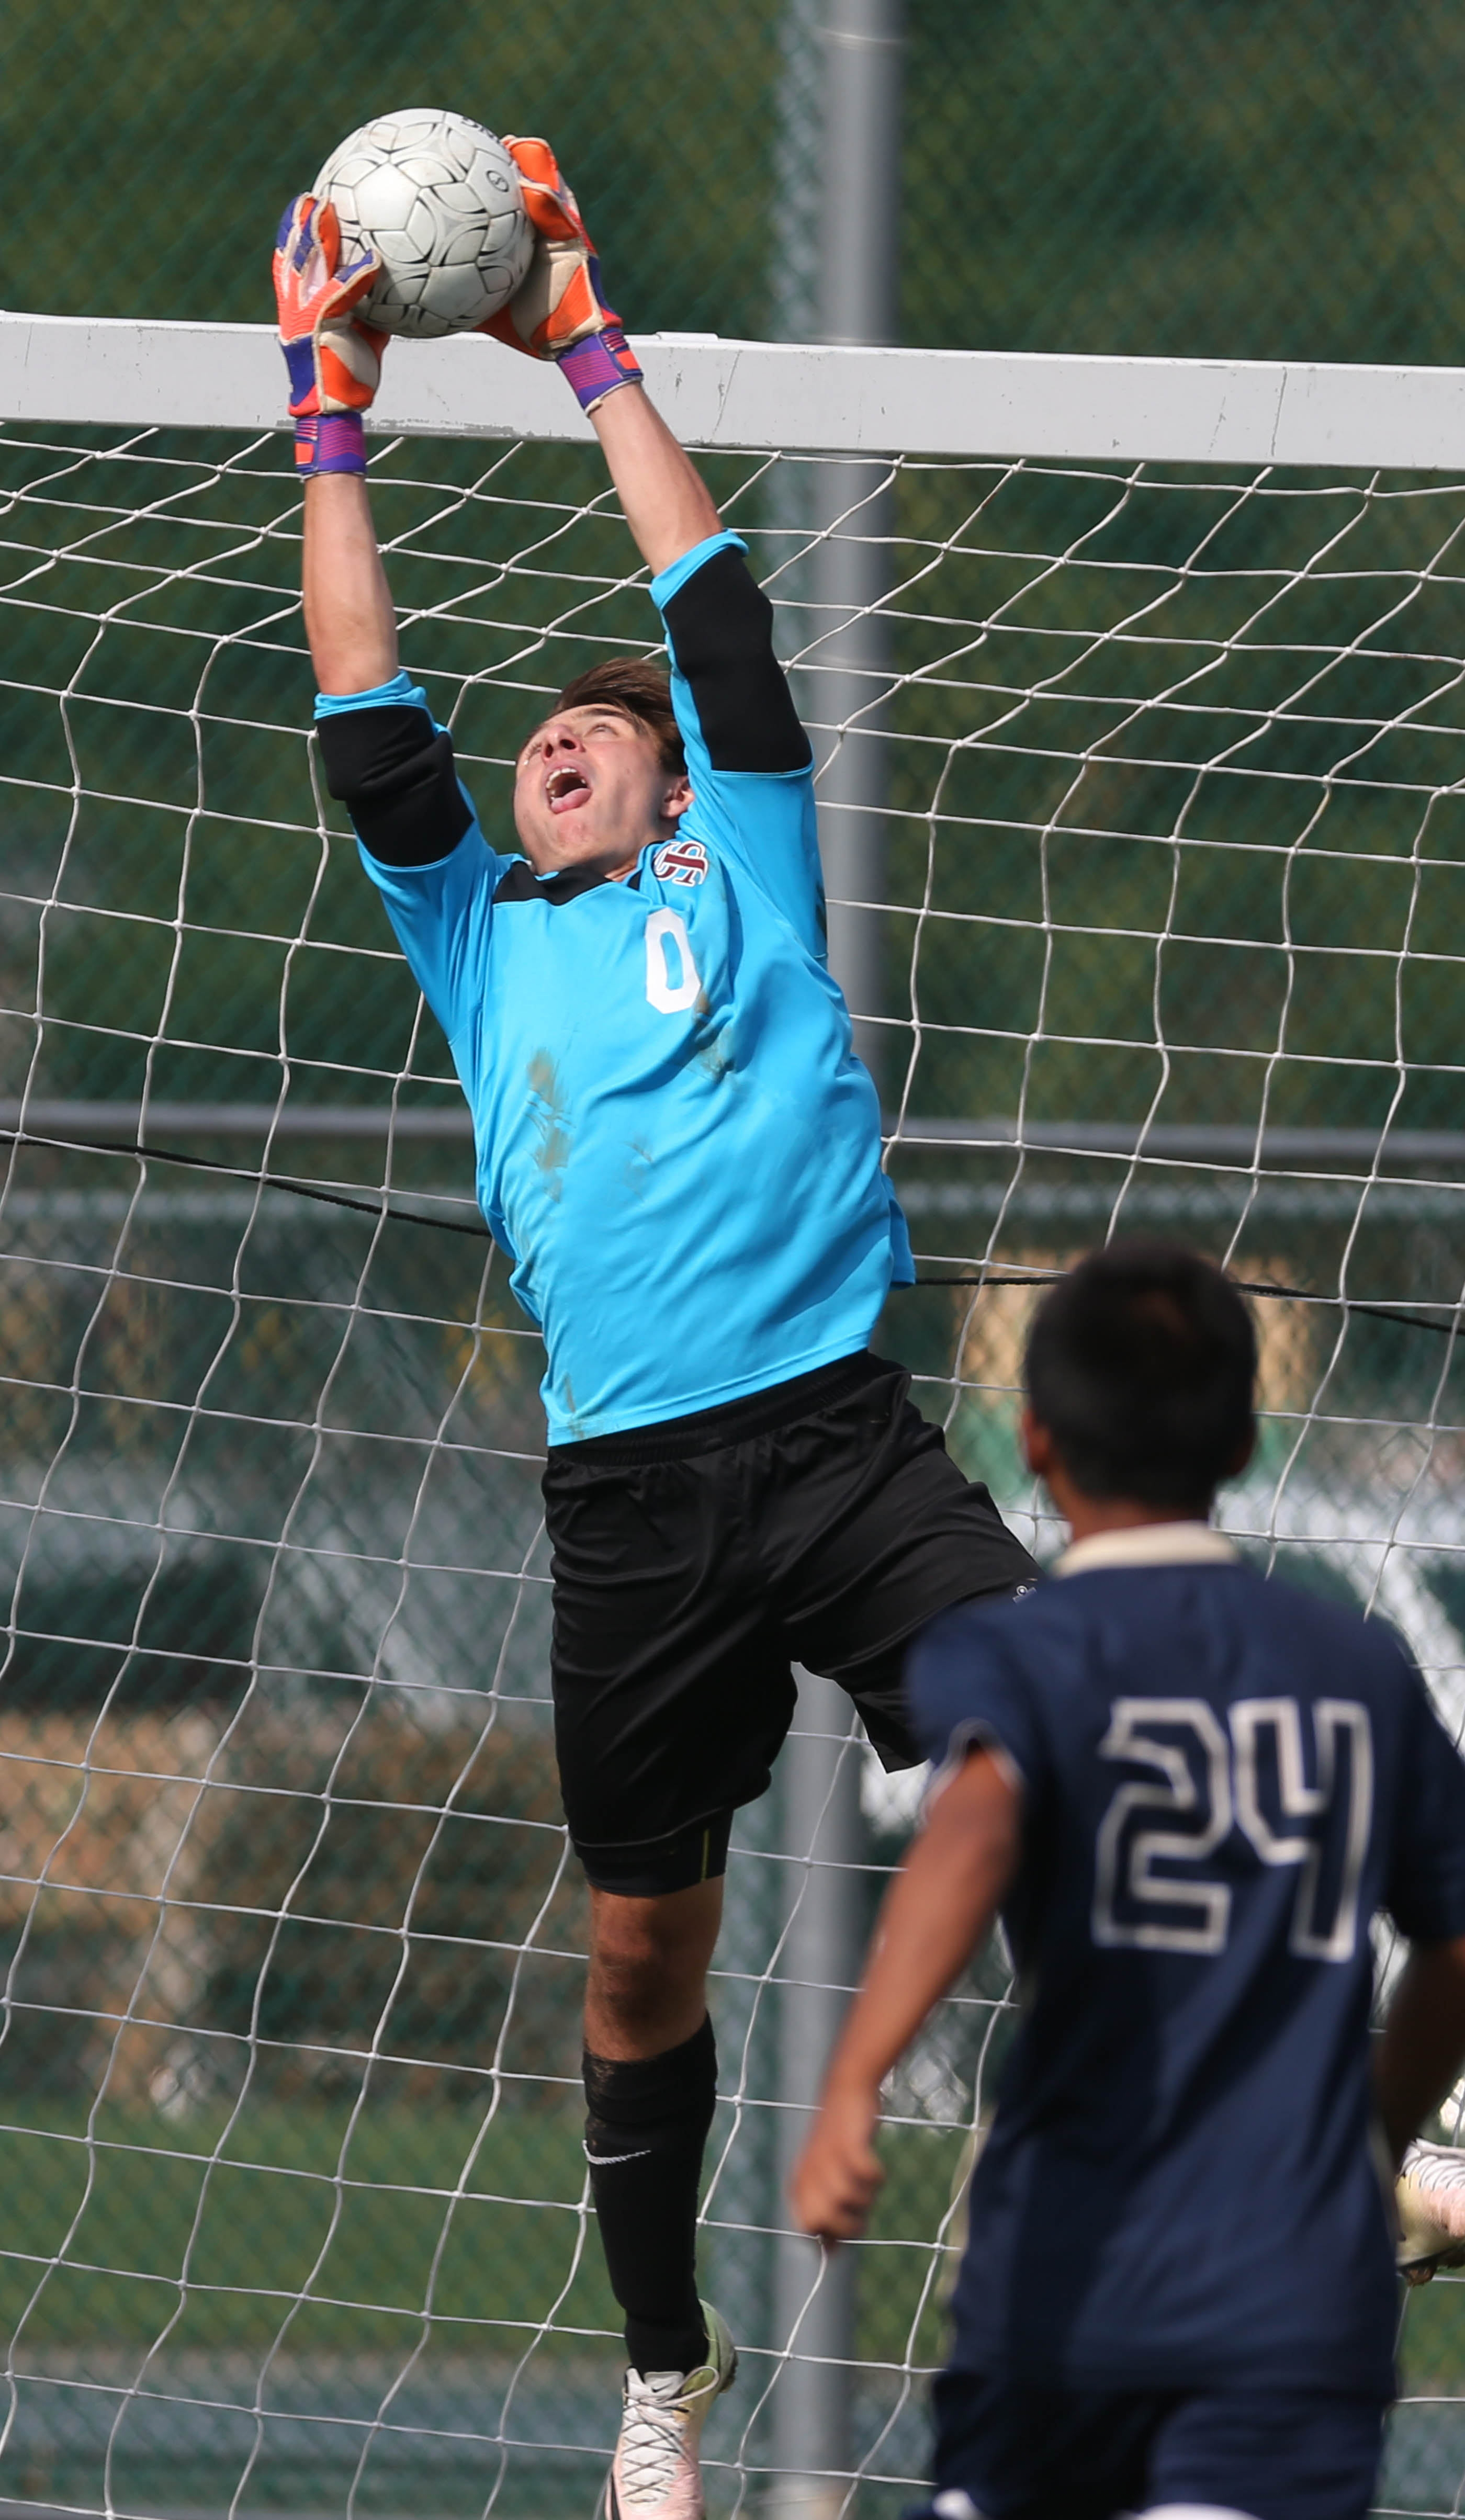 St. Joe's goalkeeper Carmine Tronalone makes a save against International Prep in the Clarence Tournament.